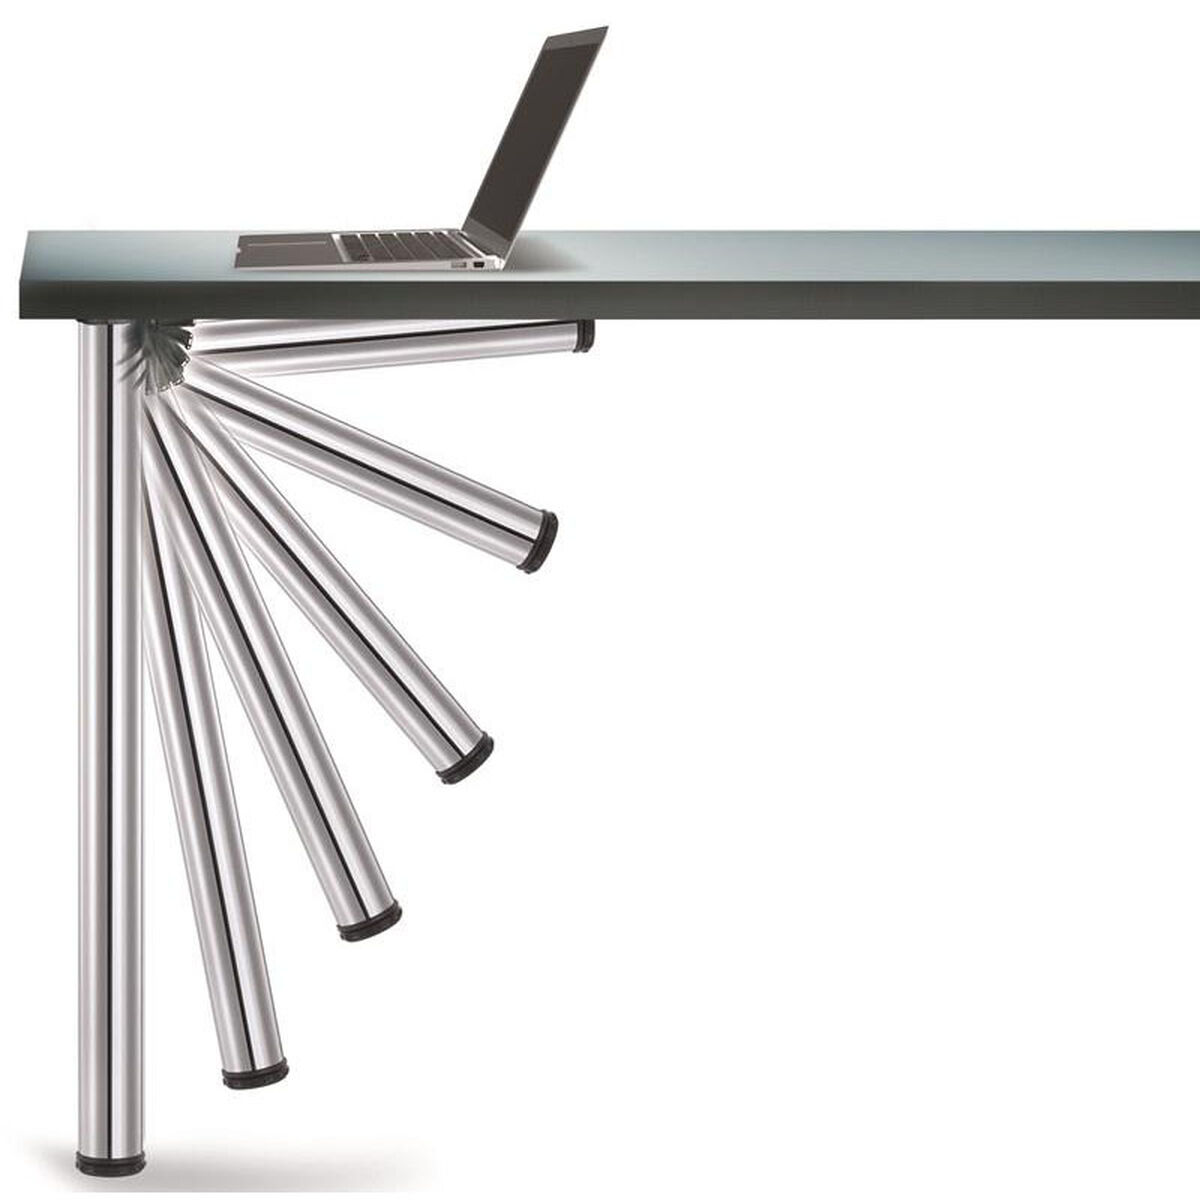 Our Chrome Push On Set Of 4 Foldable Table Legs With Mounting Hardware 27 75